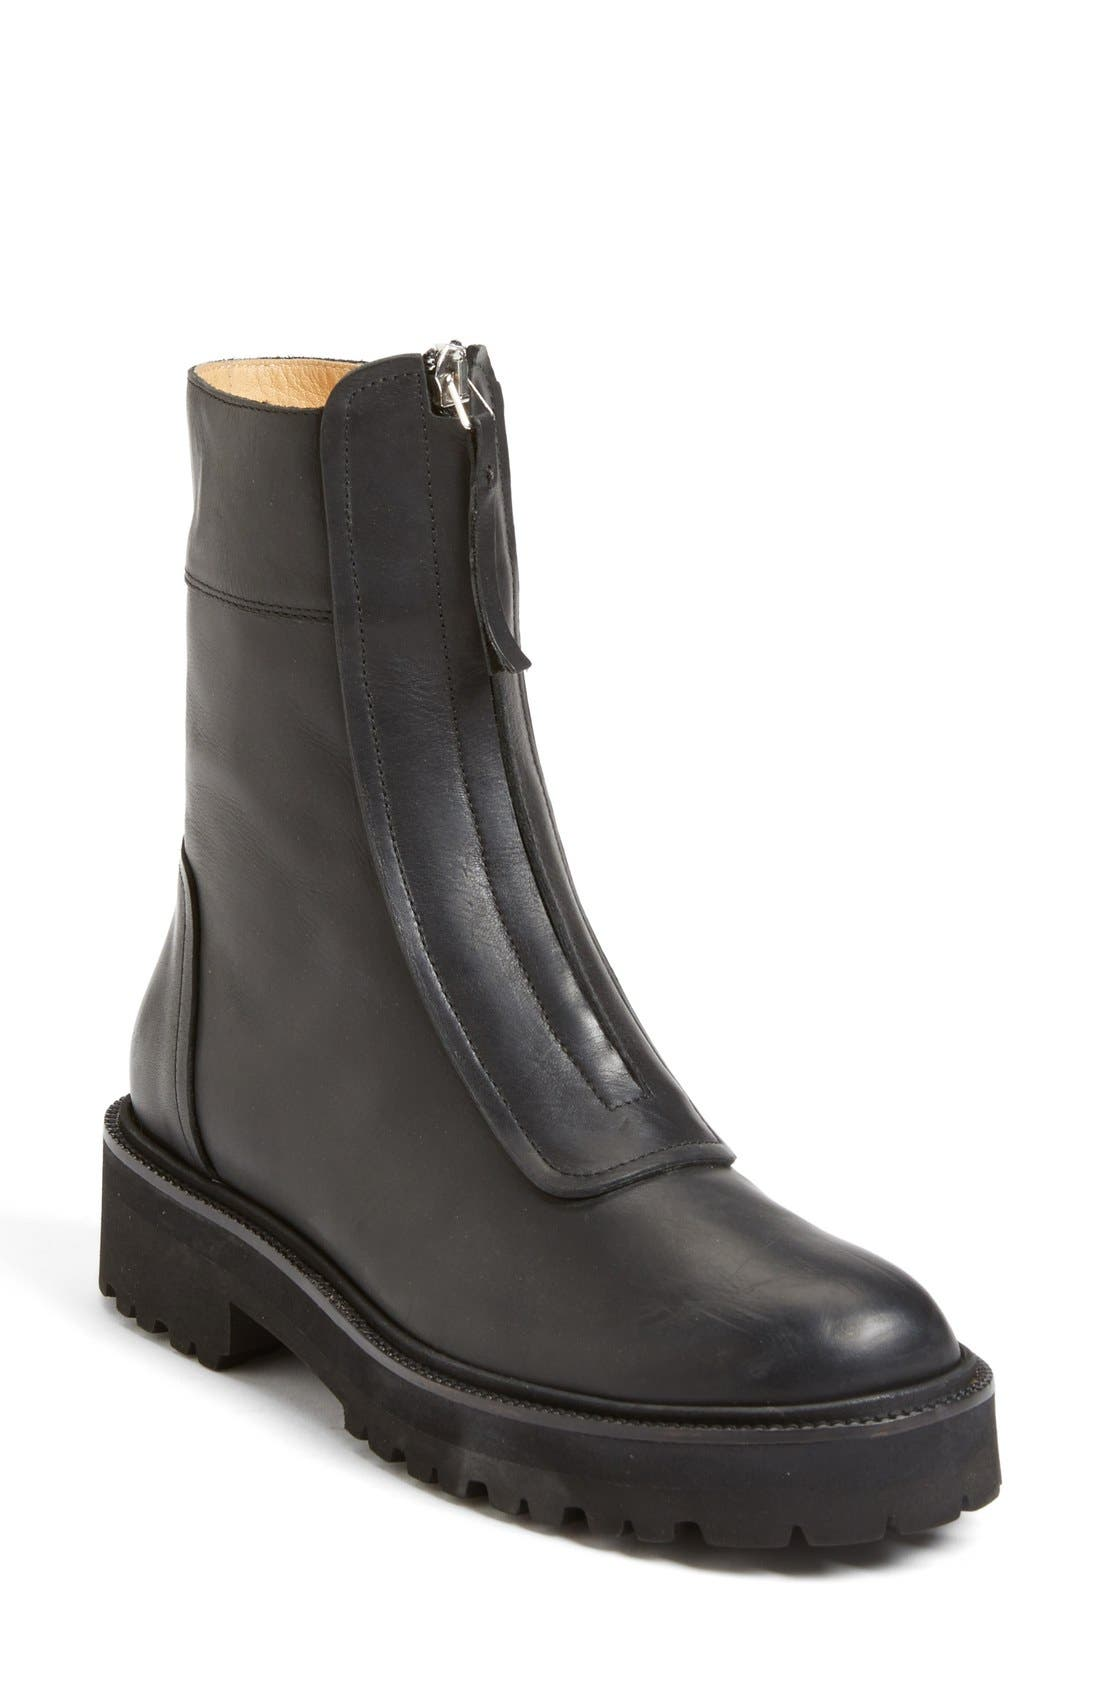 Alternate Image 1 Selected - MM6 Maison Margiela Zip Chelsea Boot (Women)